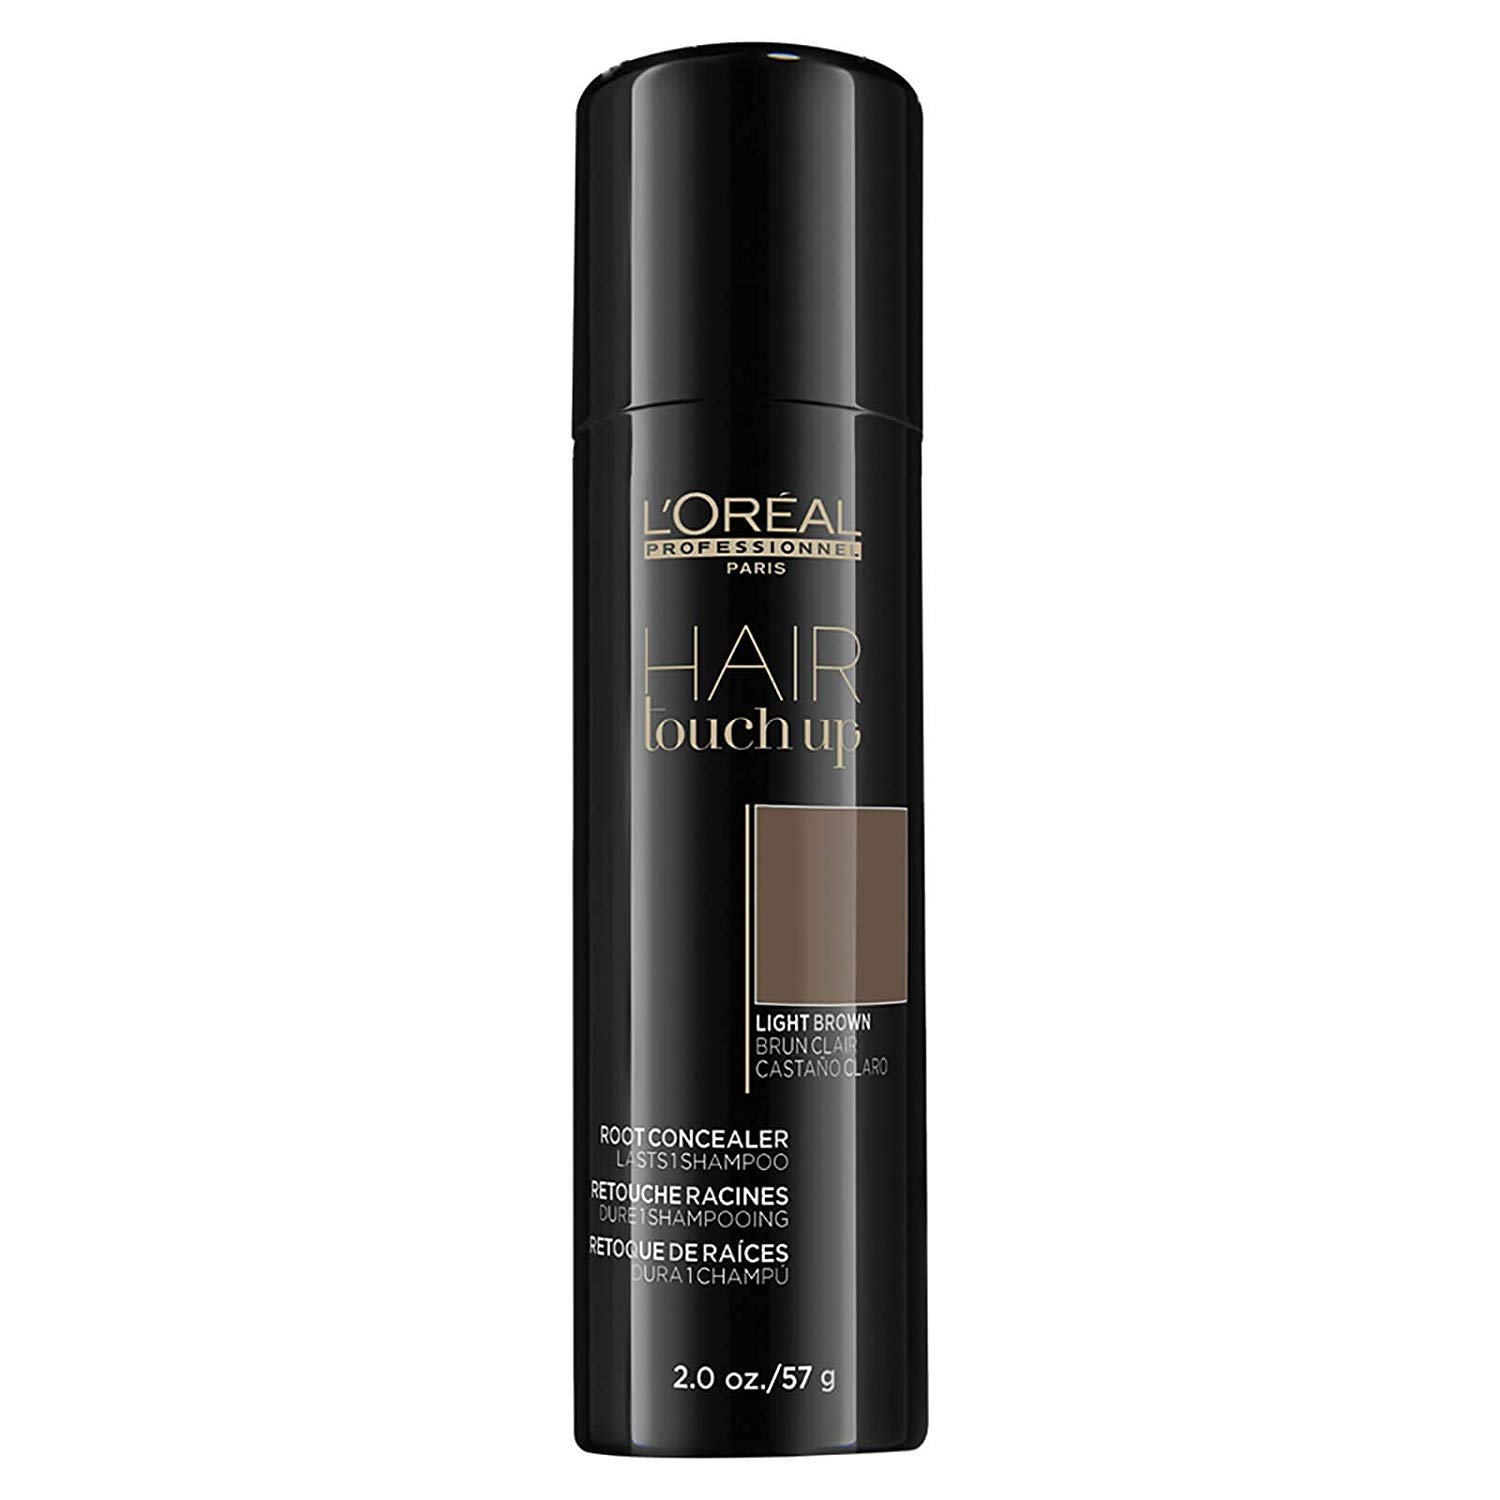 L'OREAL Hair Touch Up Root Concealer (Light Brown) 2.0 oz by L'Oreal Paris